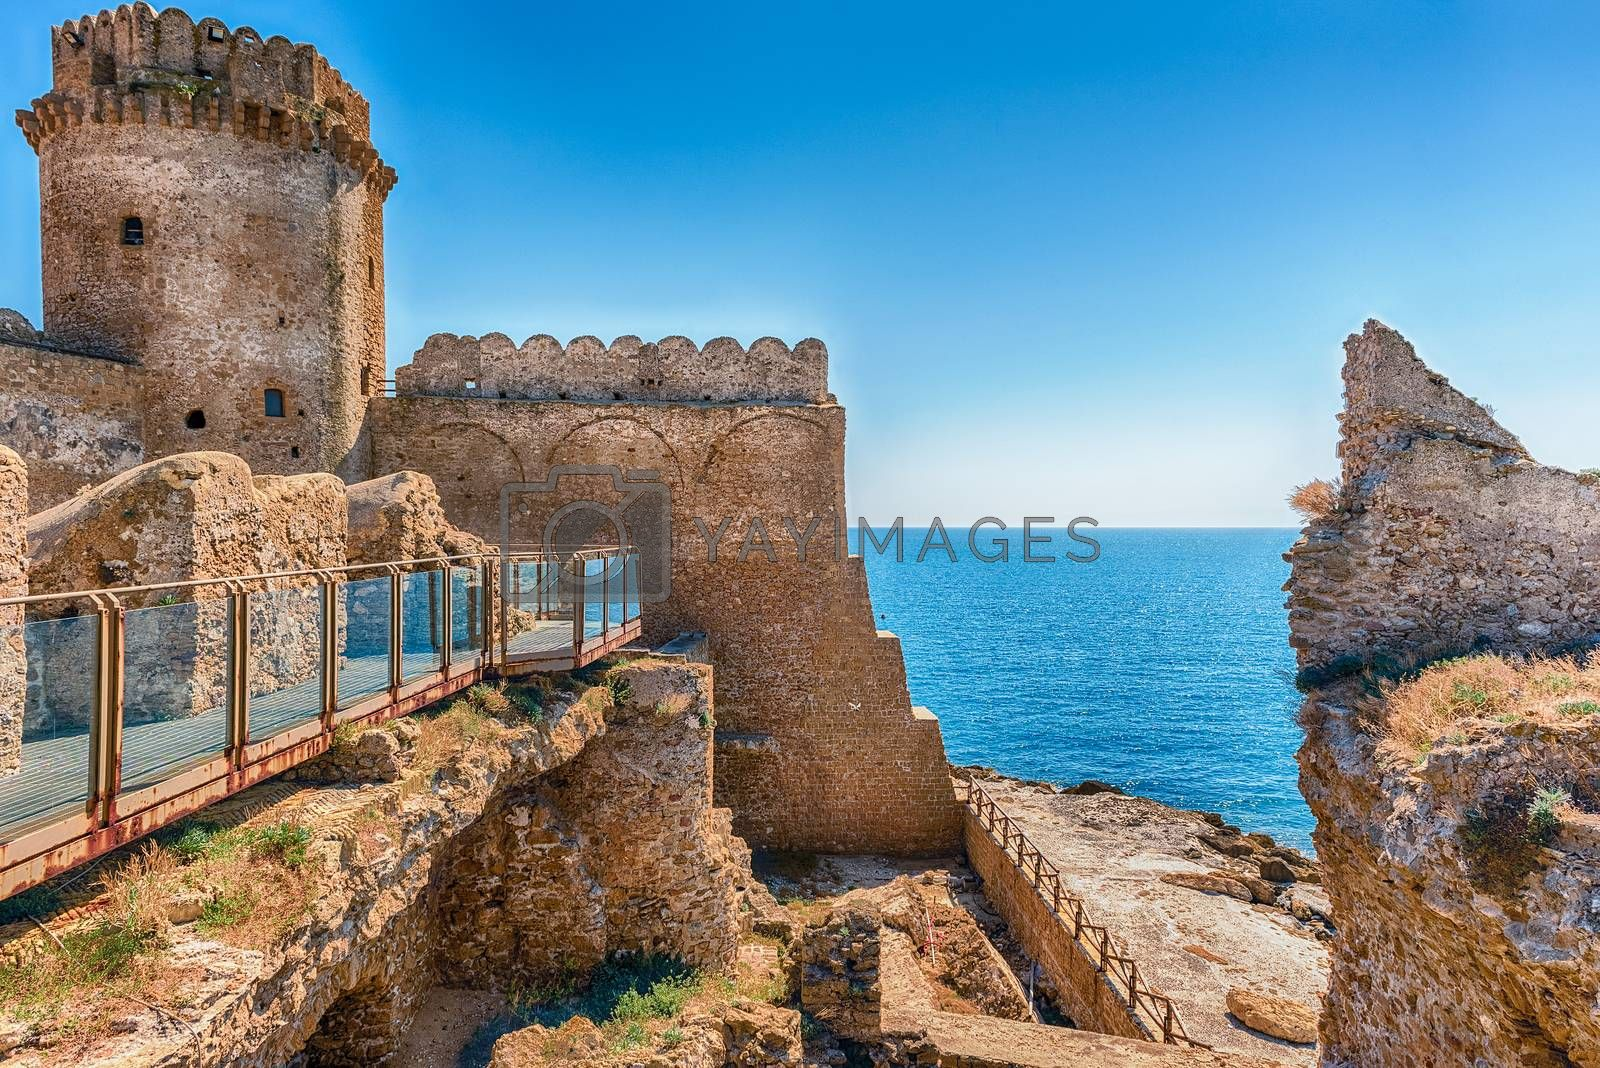 View of the scenic Aragonese Castle, aka Le Castella, on the Ionian Sea in the town of Isola di Capo Rizzuto, Italy